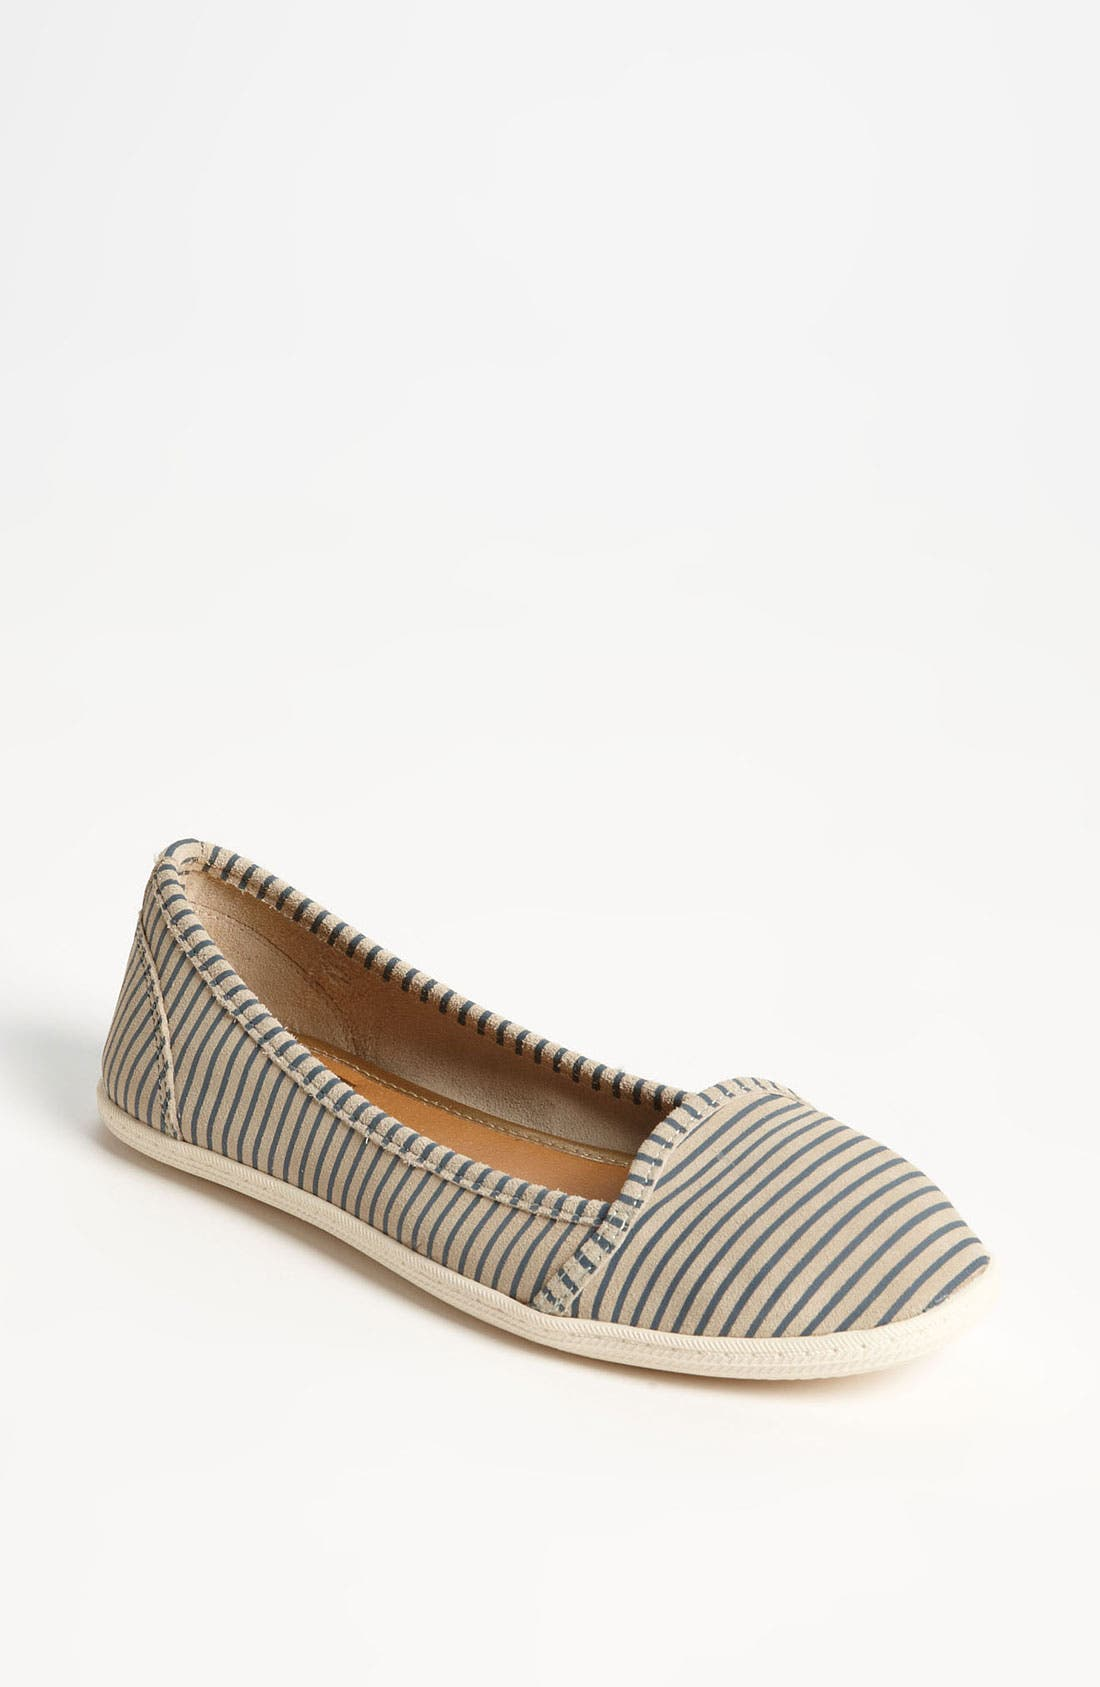 Main Image - DV by Dolce Vita 'Soloman' Flat (Online Exclusive)